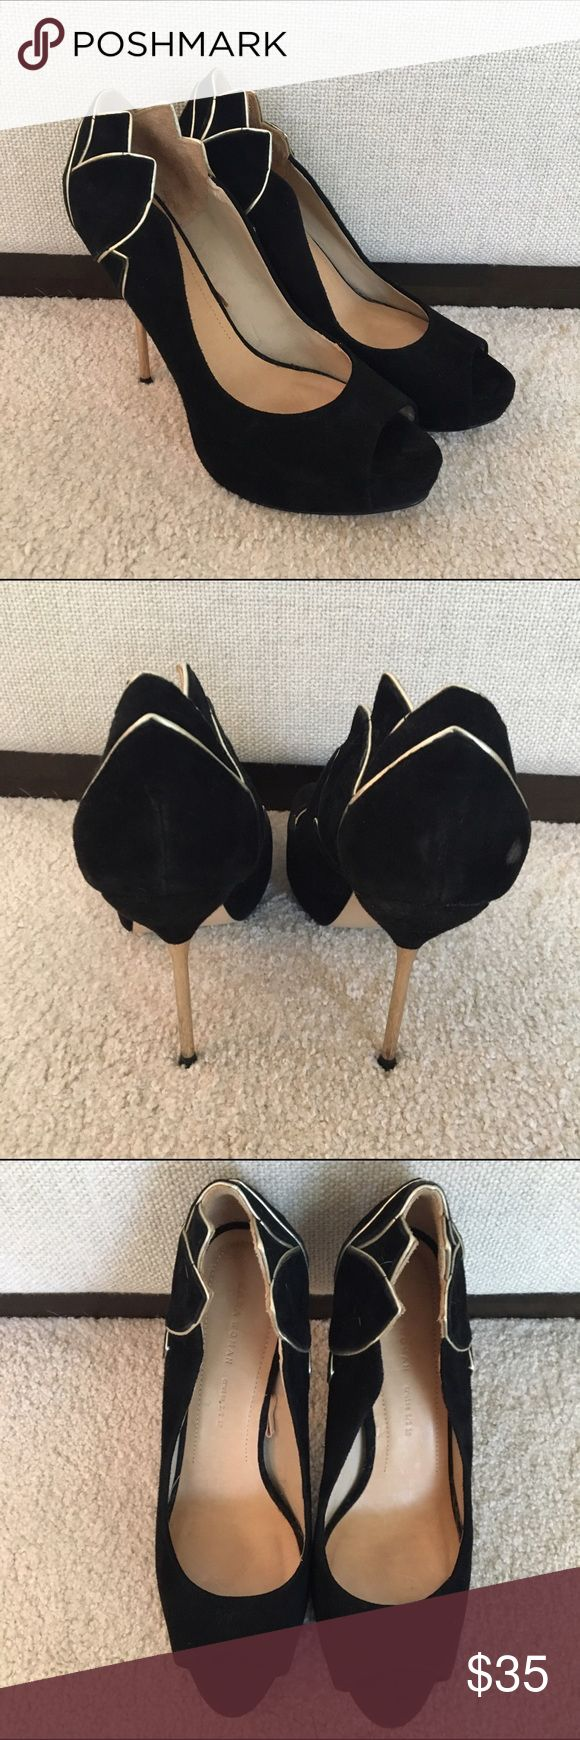 Zara Black Gold peep toe heels Excellent condition. Small area on right heel where the suede has rubbed off. No box Zara Shoes Heels